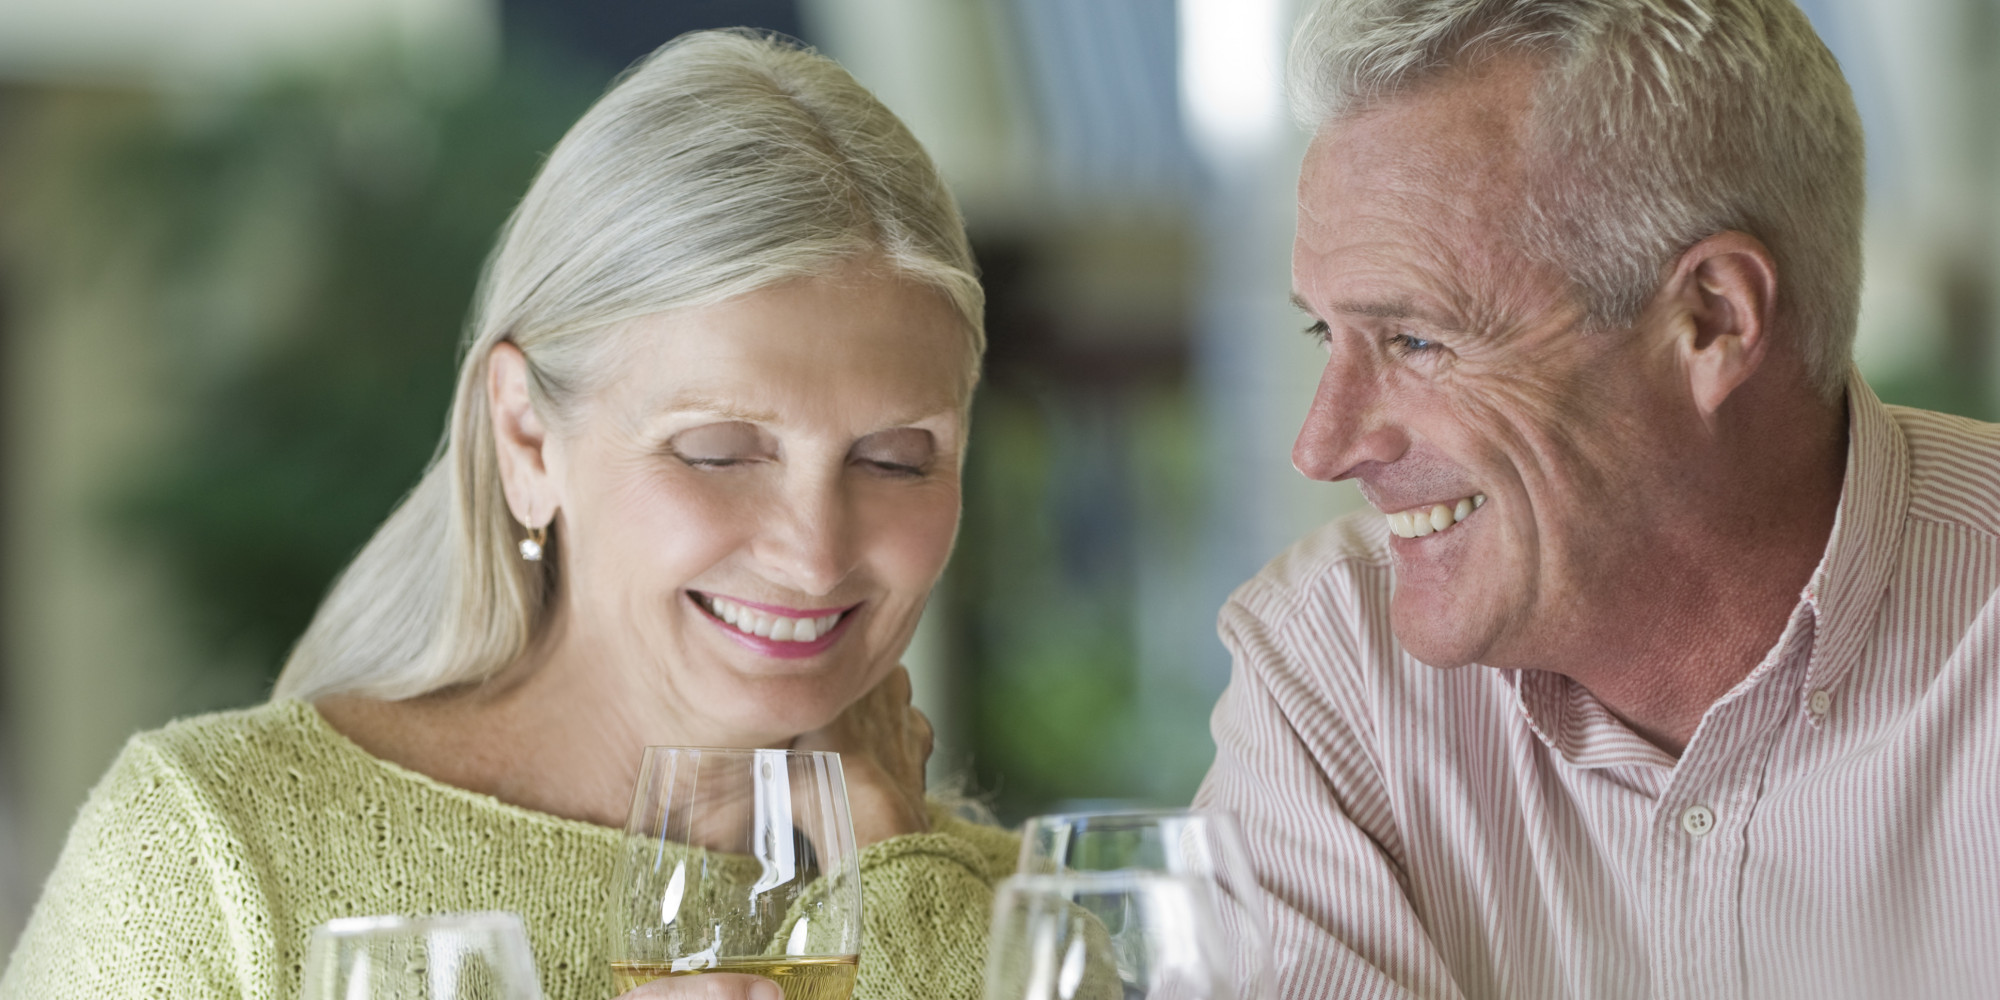 north salem senior dating site Senior citizen discounts are great — but not if you're going to the movies alone join the winston salem seniors dating scene by registering for mingle2's free online dating site for winston salem senior singles.